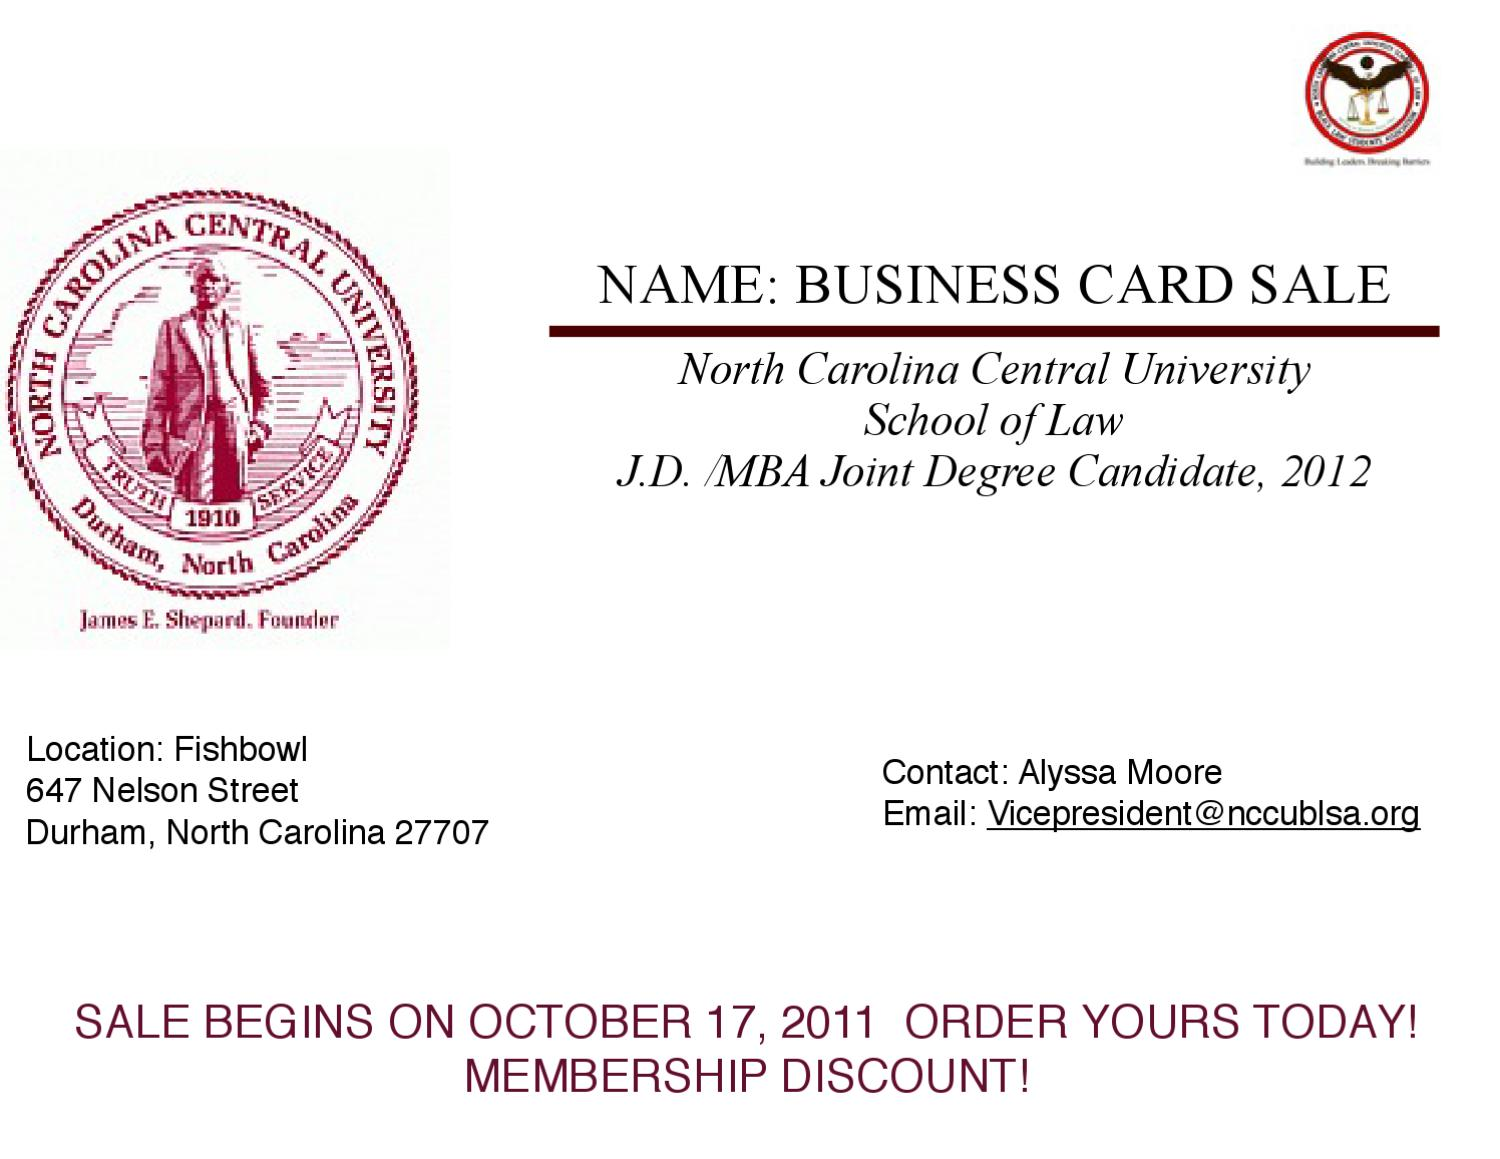 NCCU Business Card Sale by NCCU BLSA - issuu